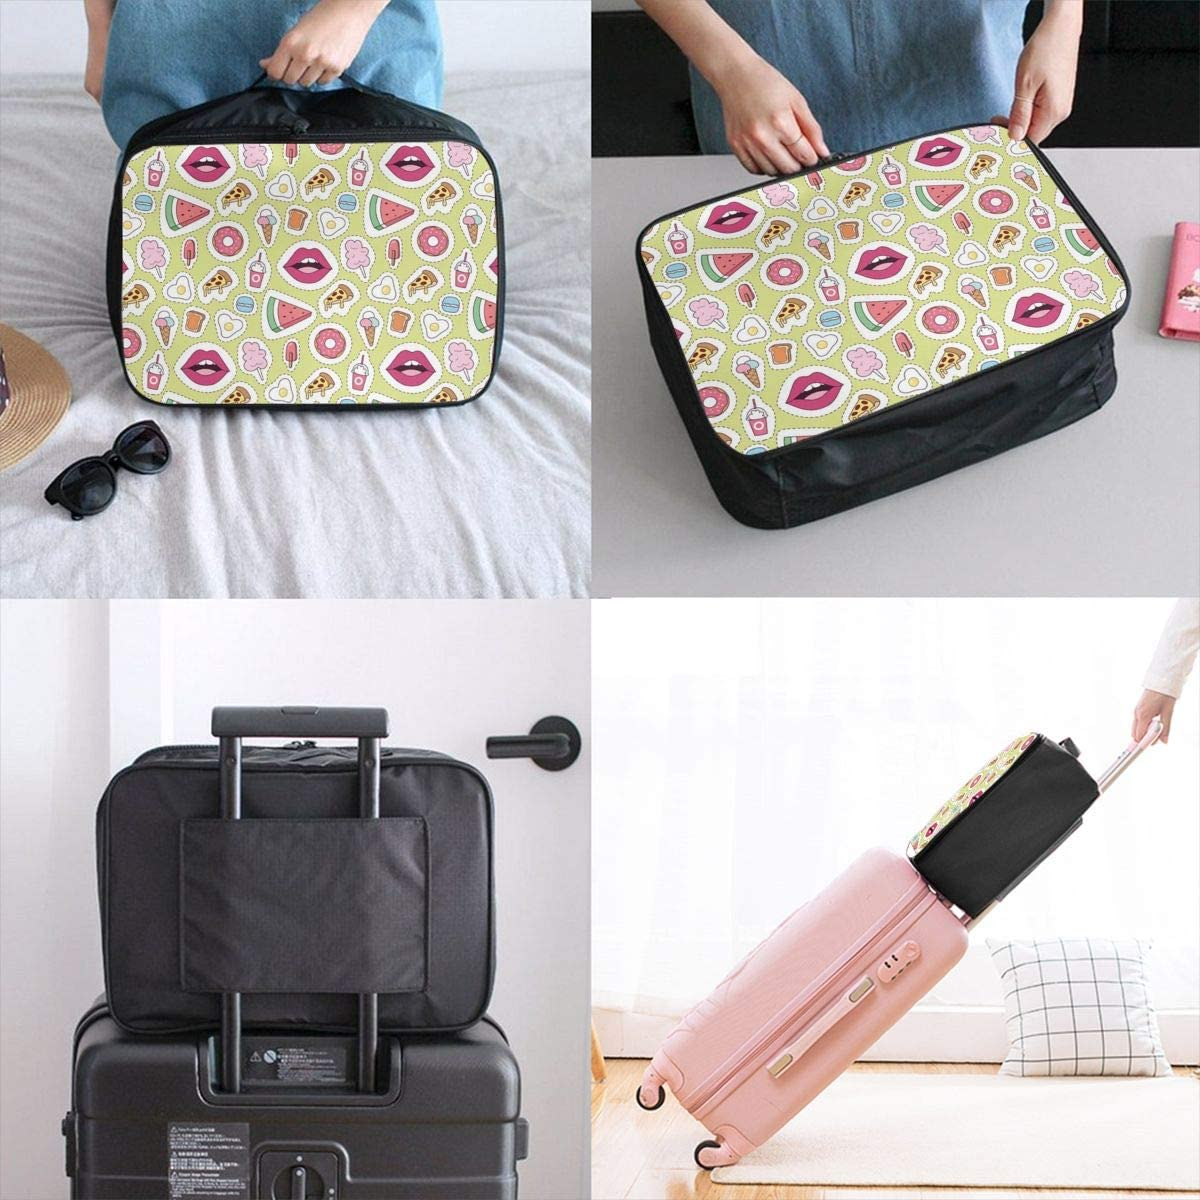 Yunshm Hipster Patches Elements Personalized Trolley Handbag Waterproof Unisex Large Capacity For Business Travel Storage